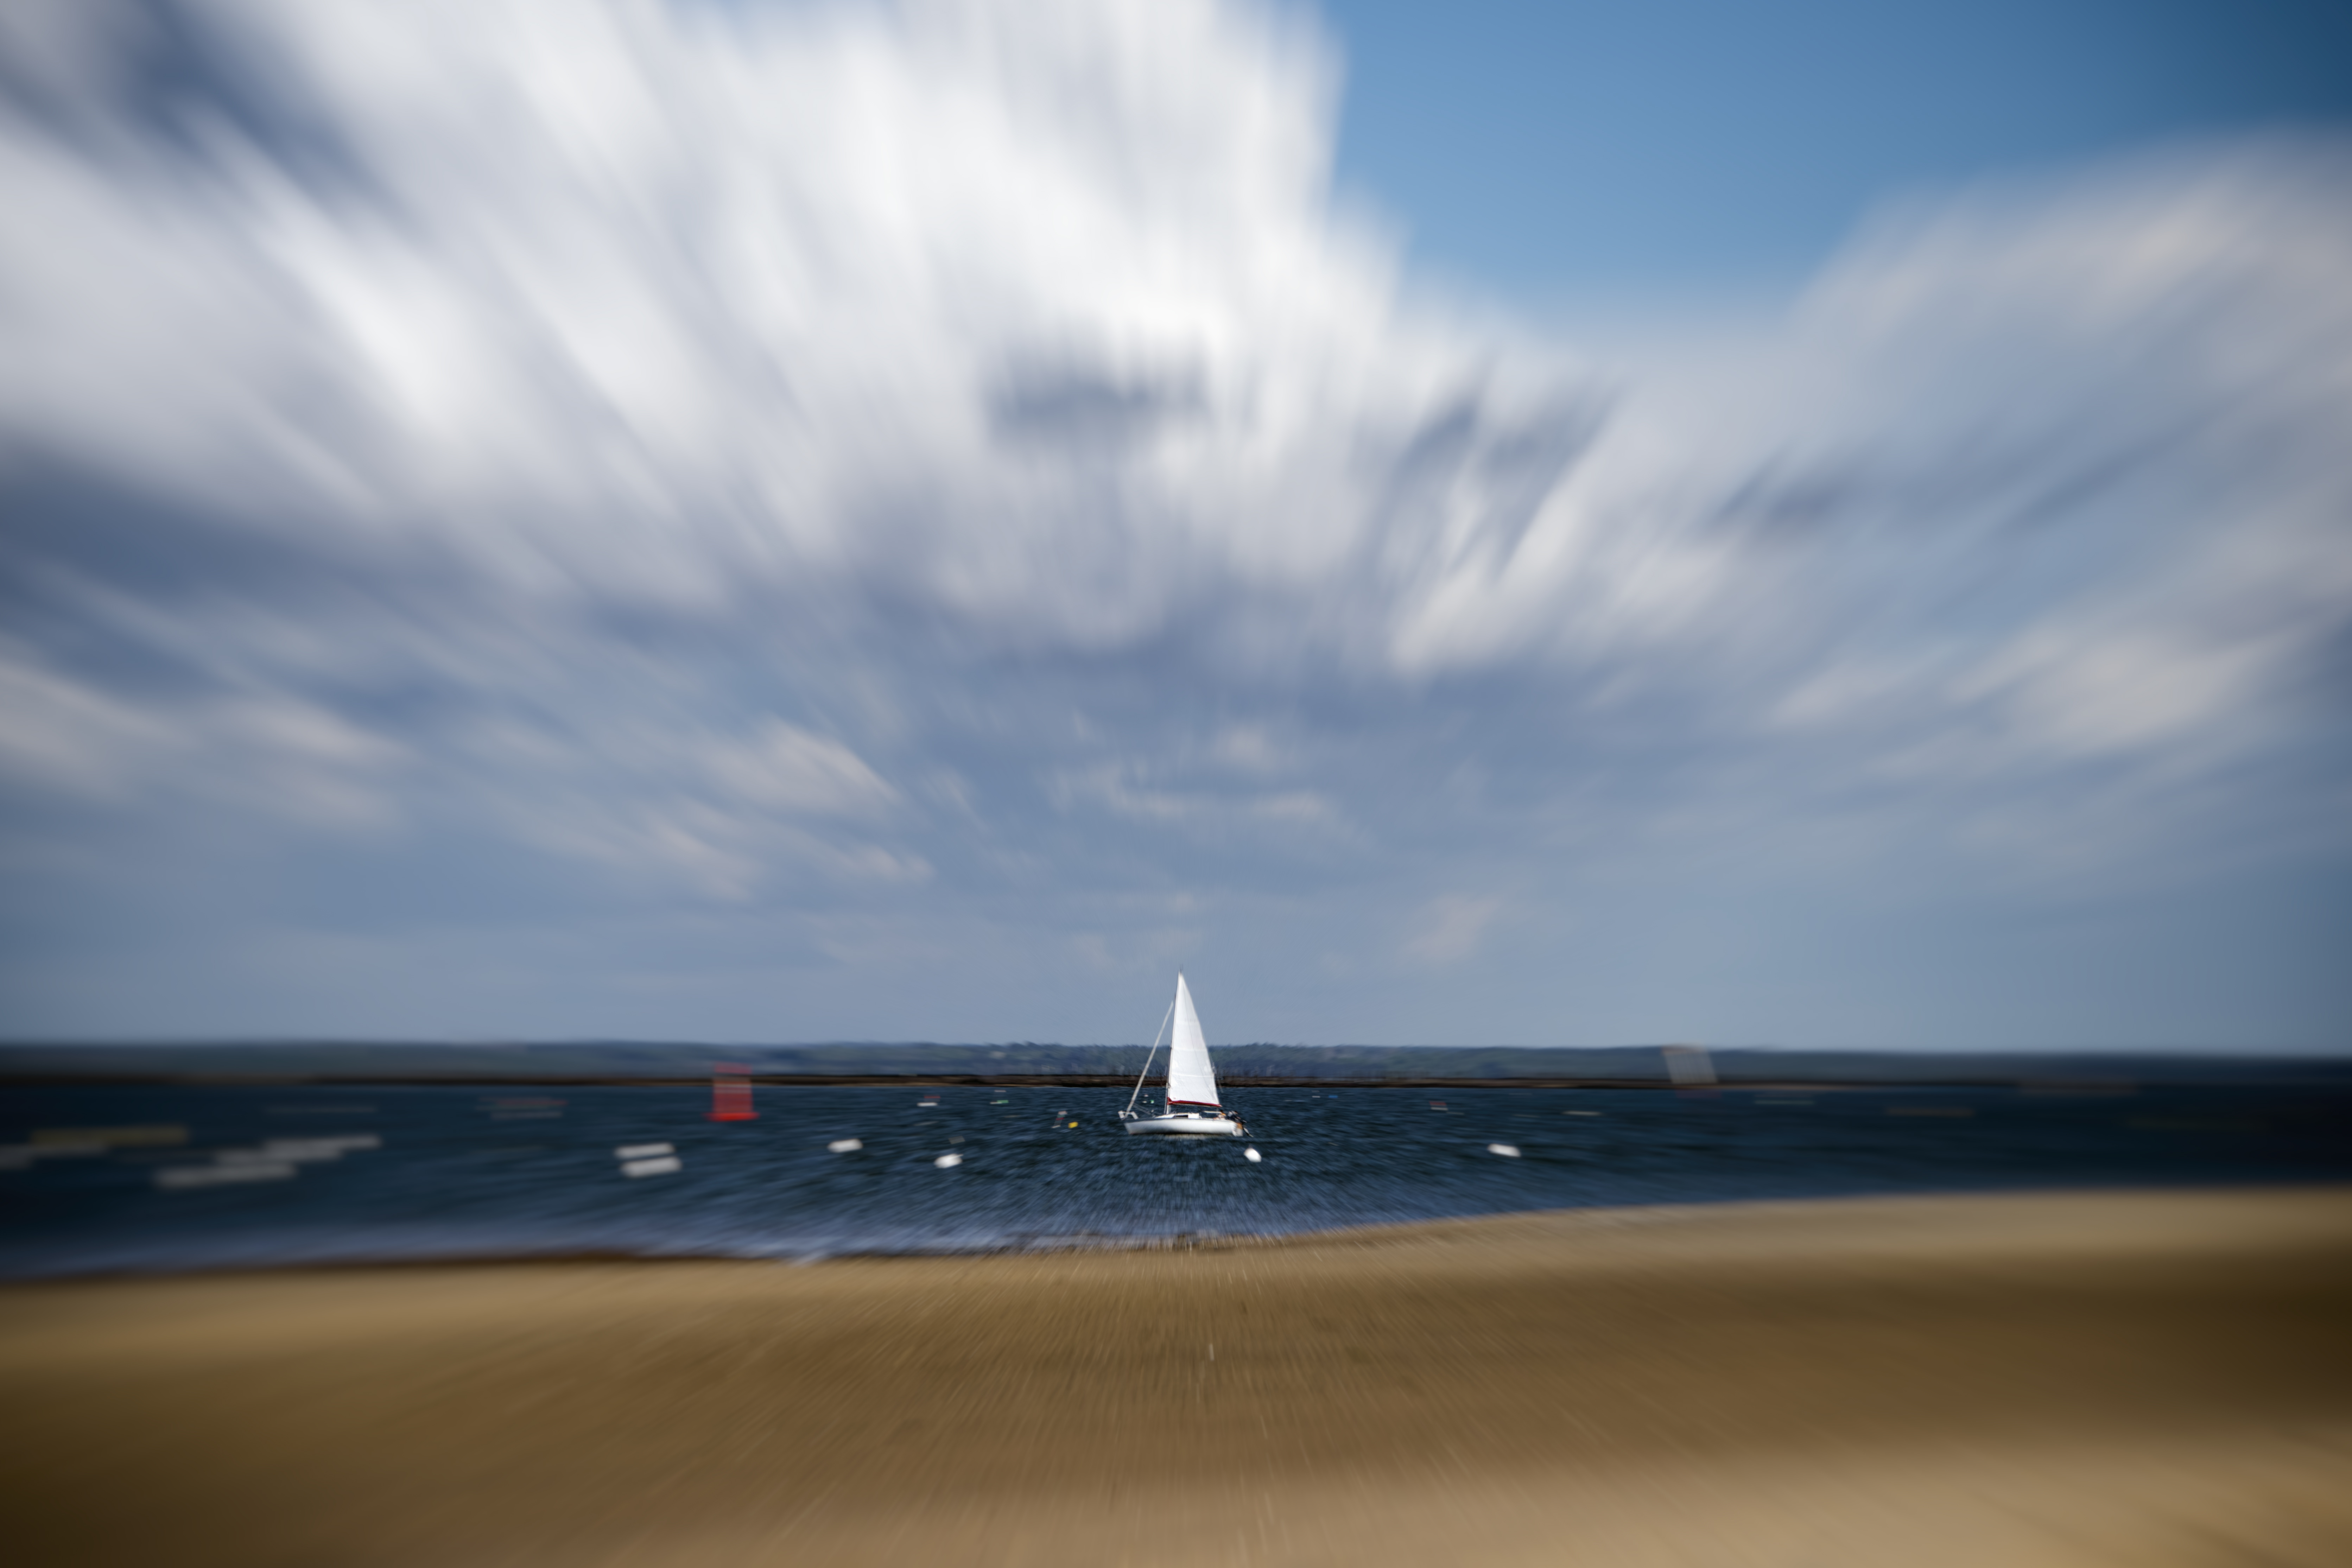 Sailboat zoom